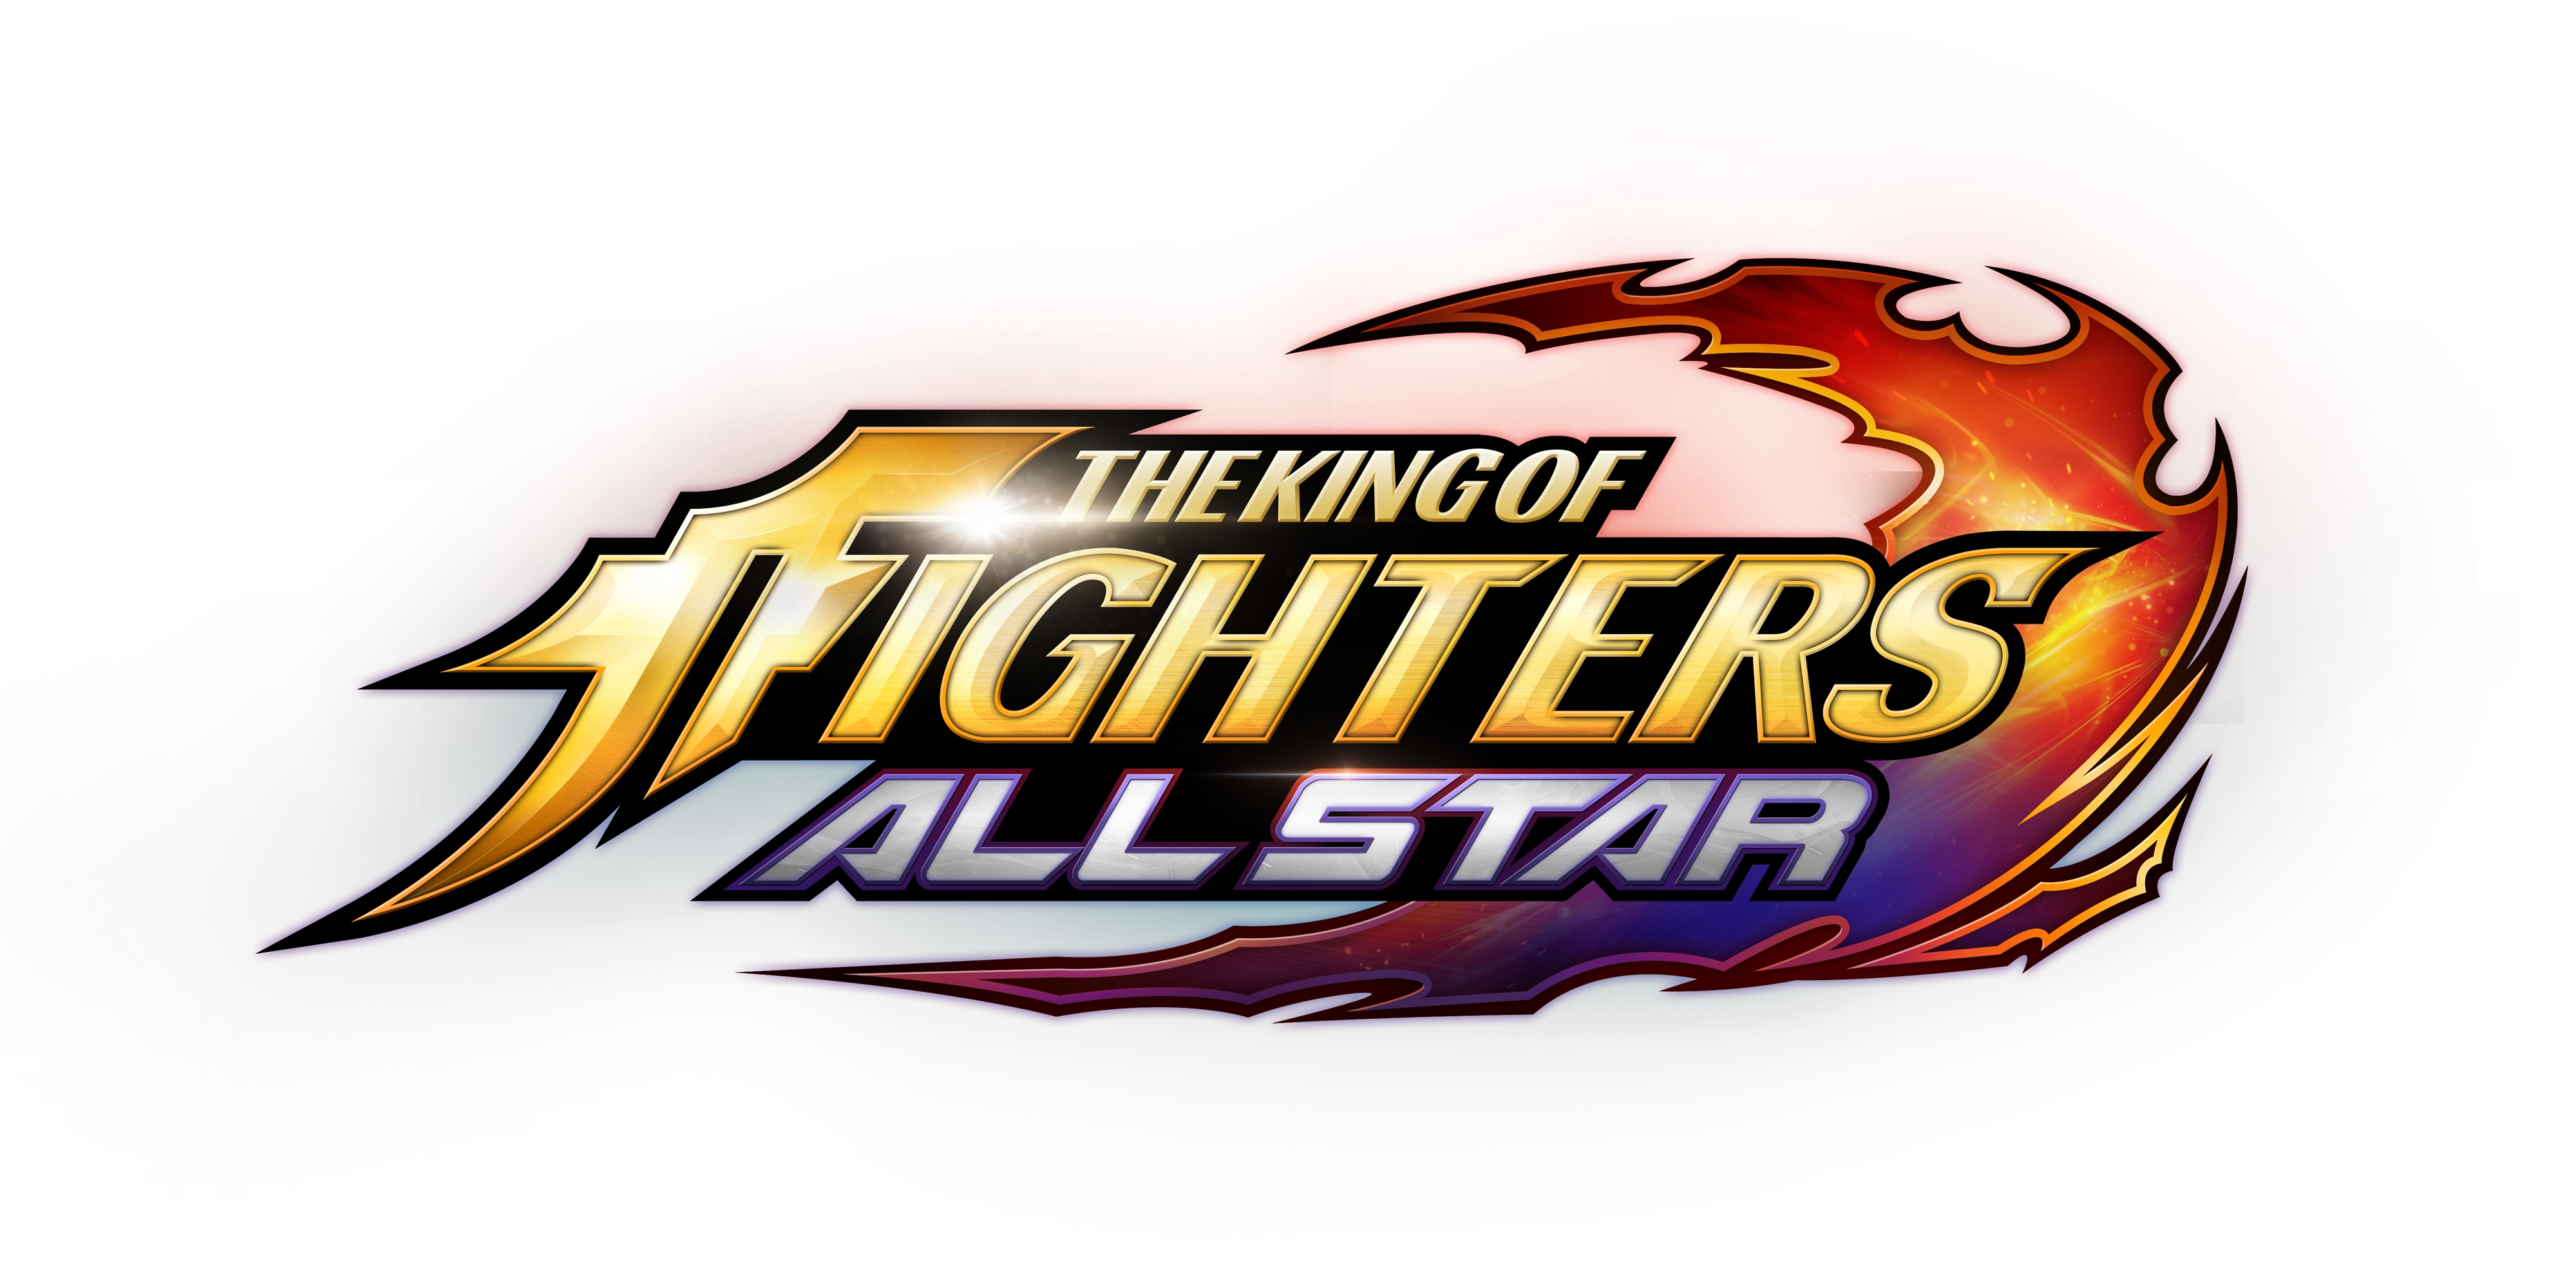 『THE KING OF FIGHTERS』 2017年国内サービス開始を決定!